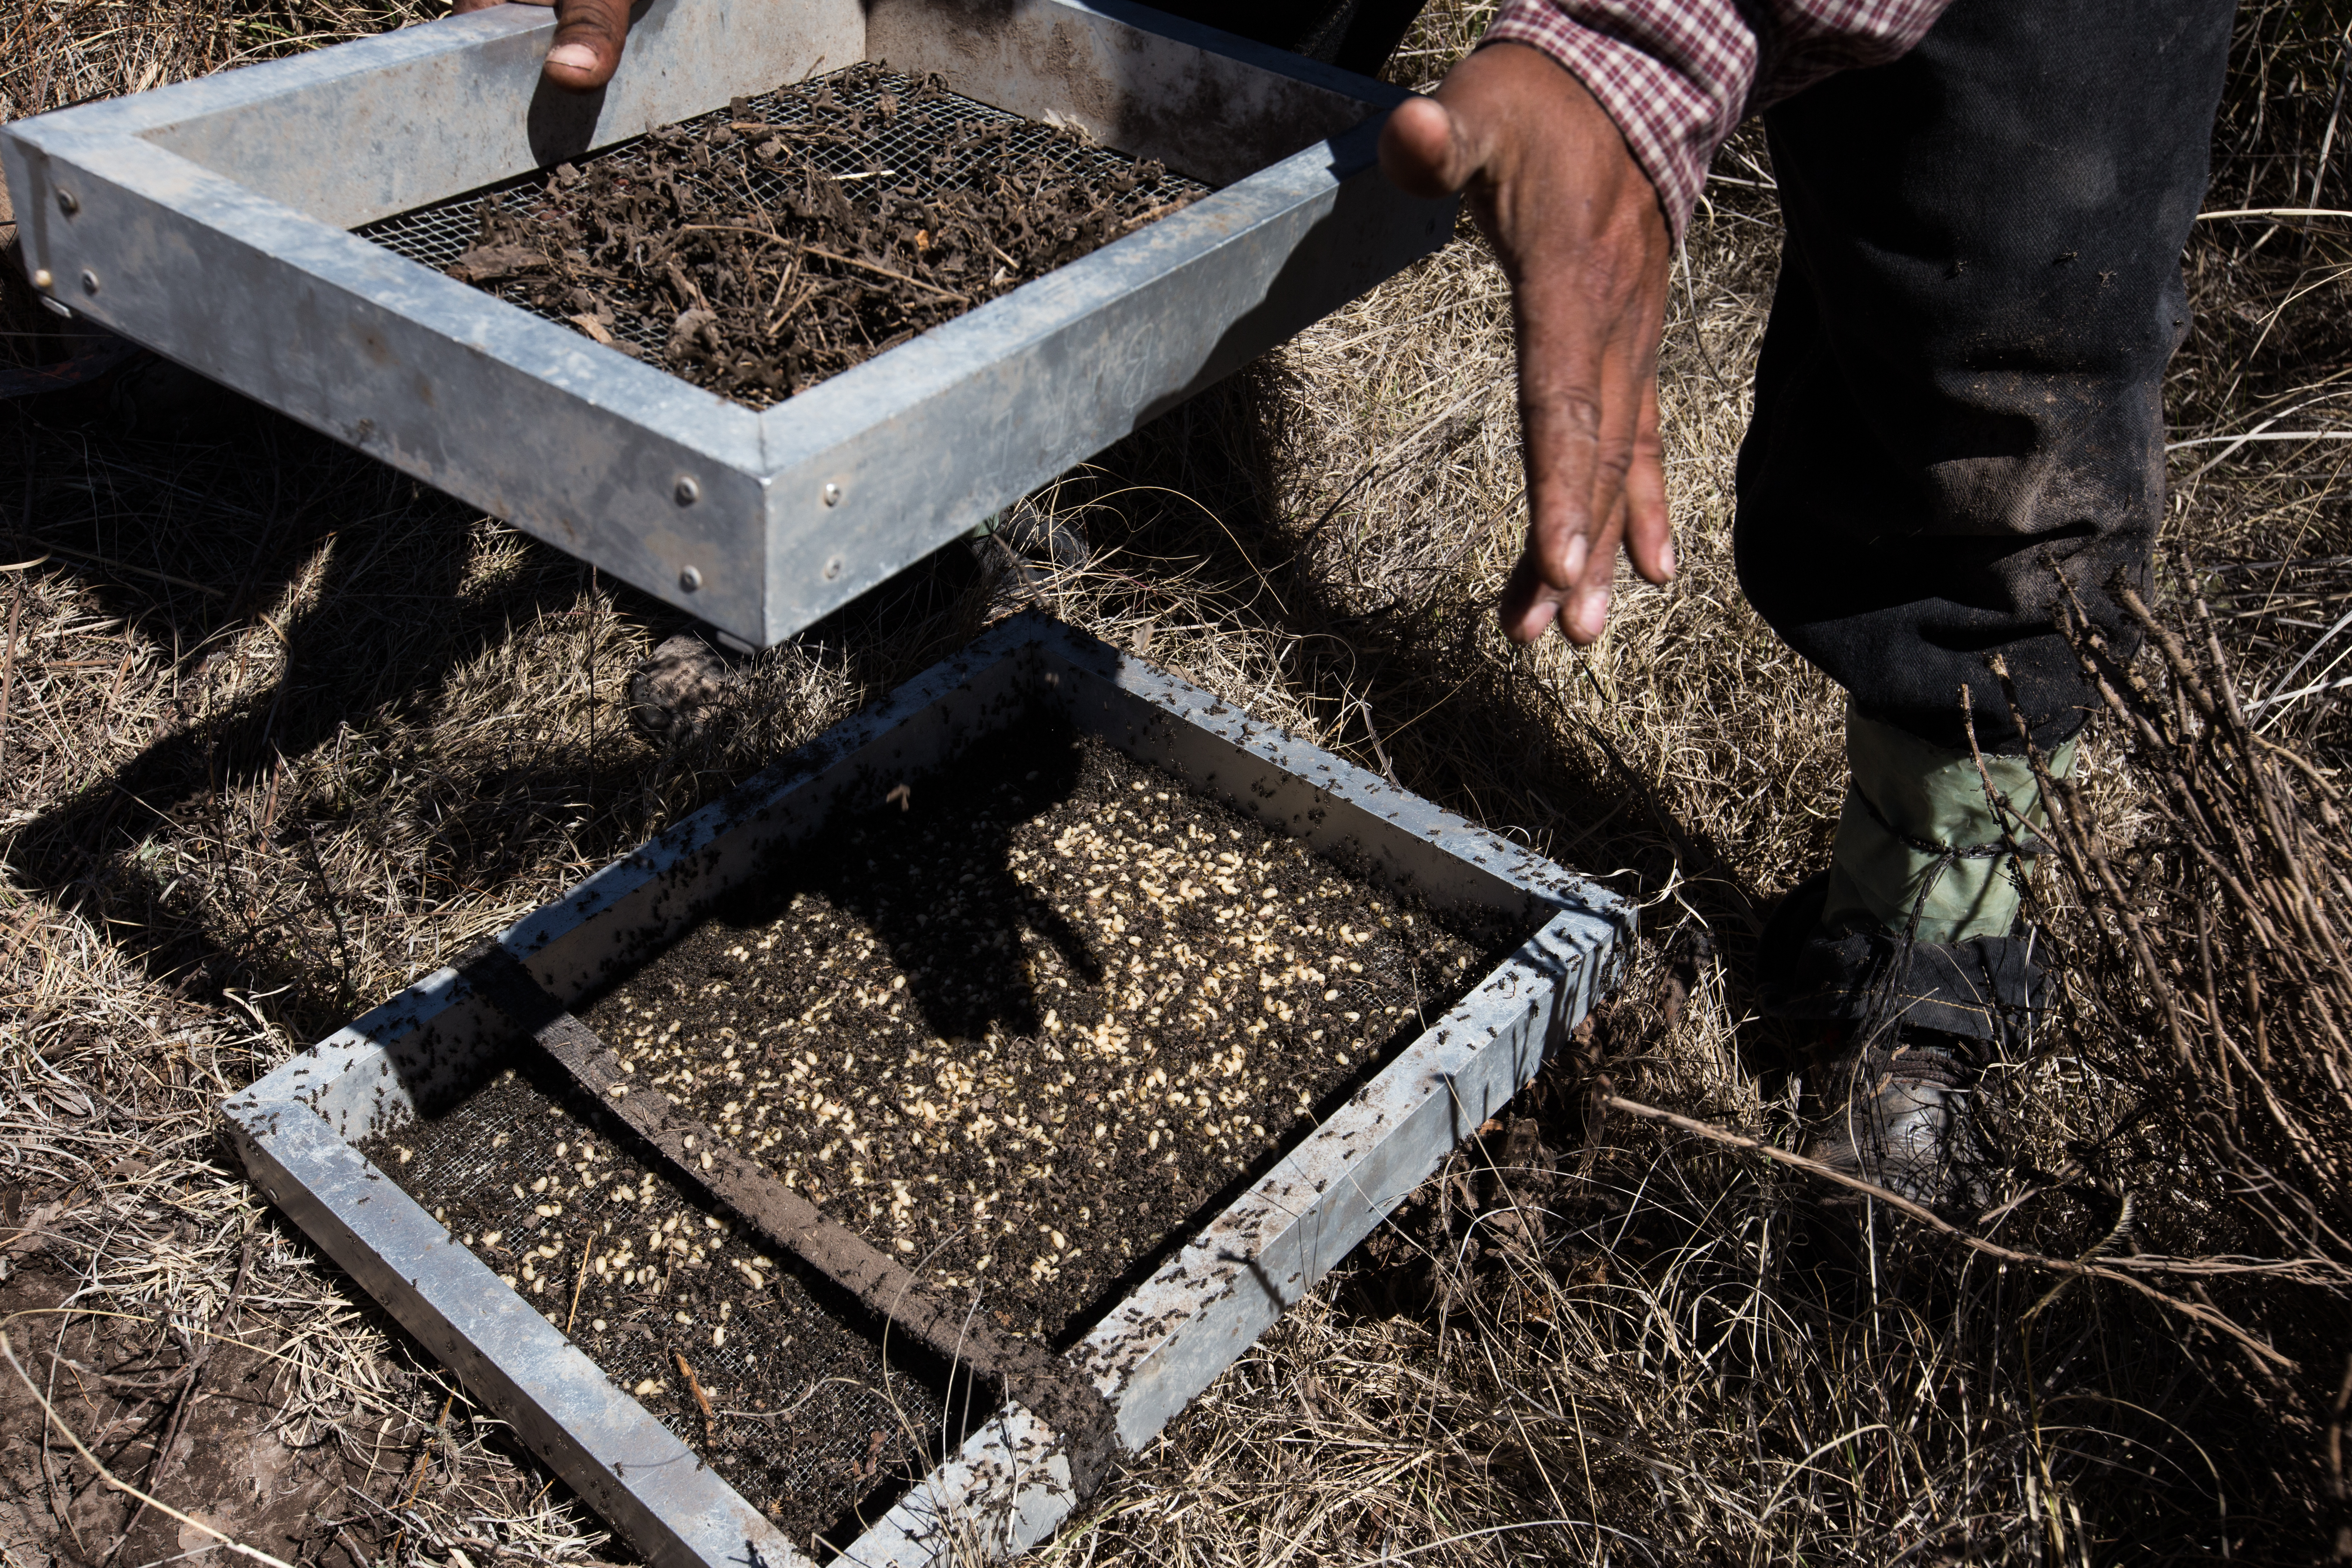 Blas Rodriguez, son of Francisco and occasional partner, strains the ants eggs with a sieve at the desert highlands. Cerro Prieto, San Luis Potosi.